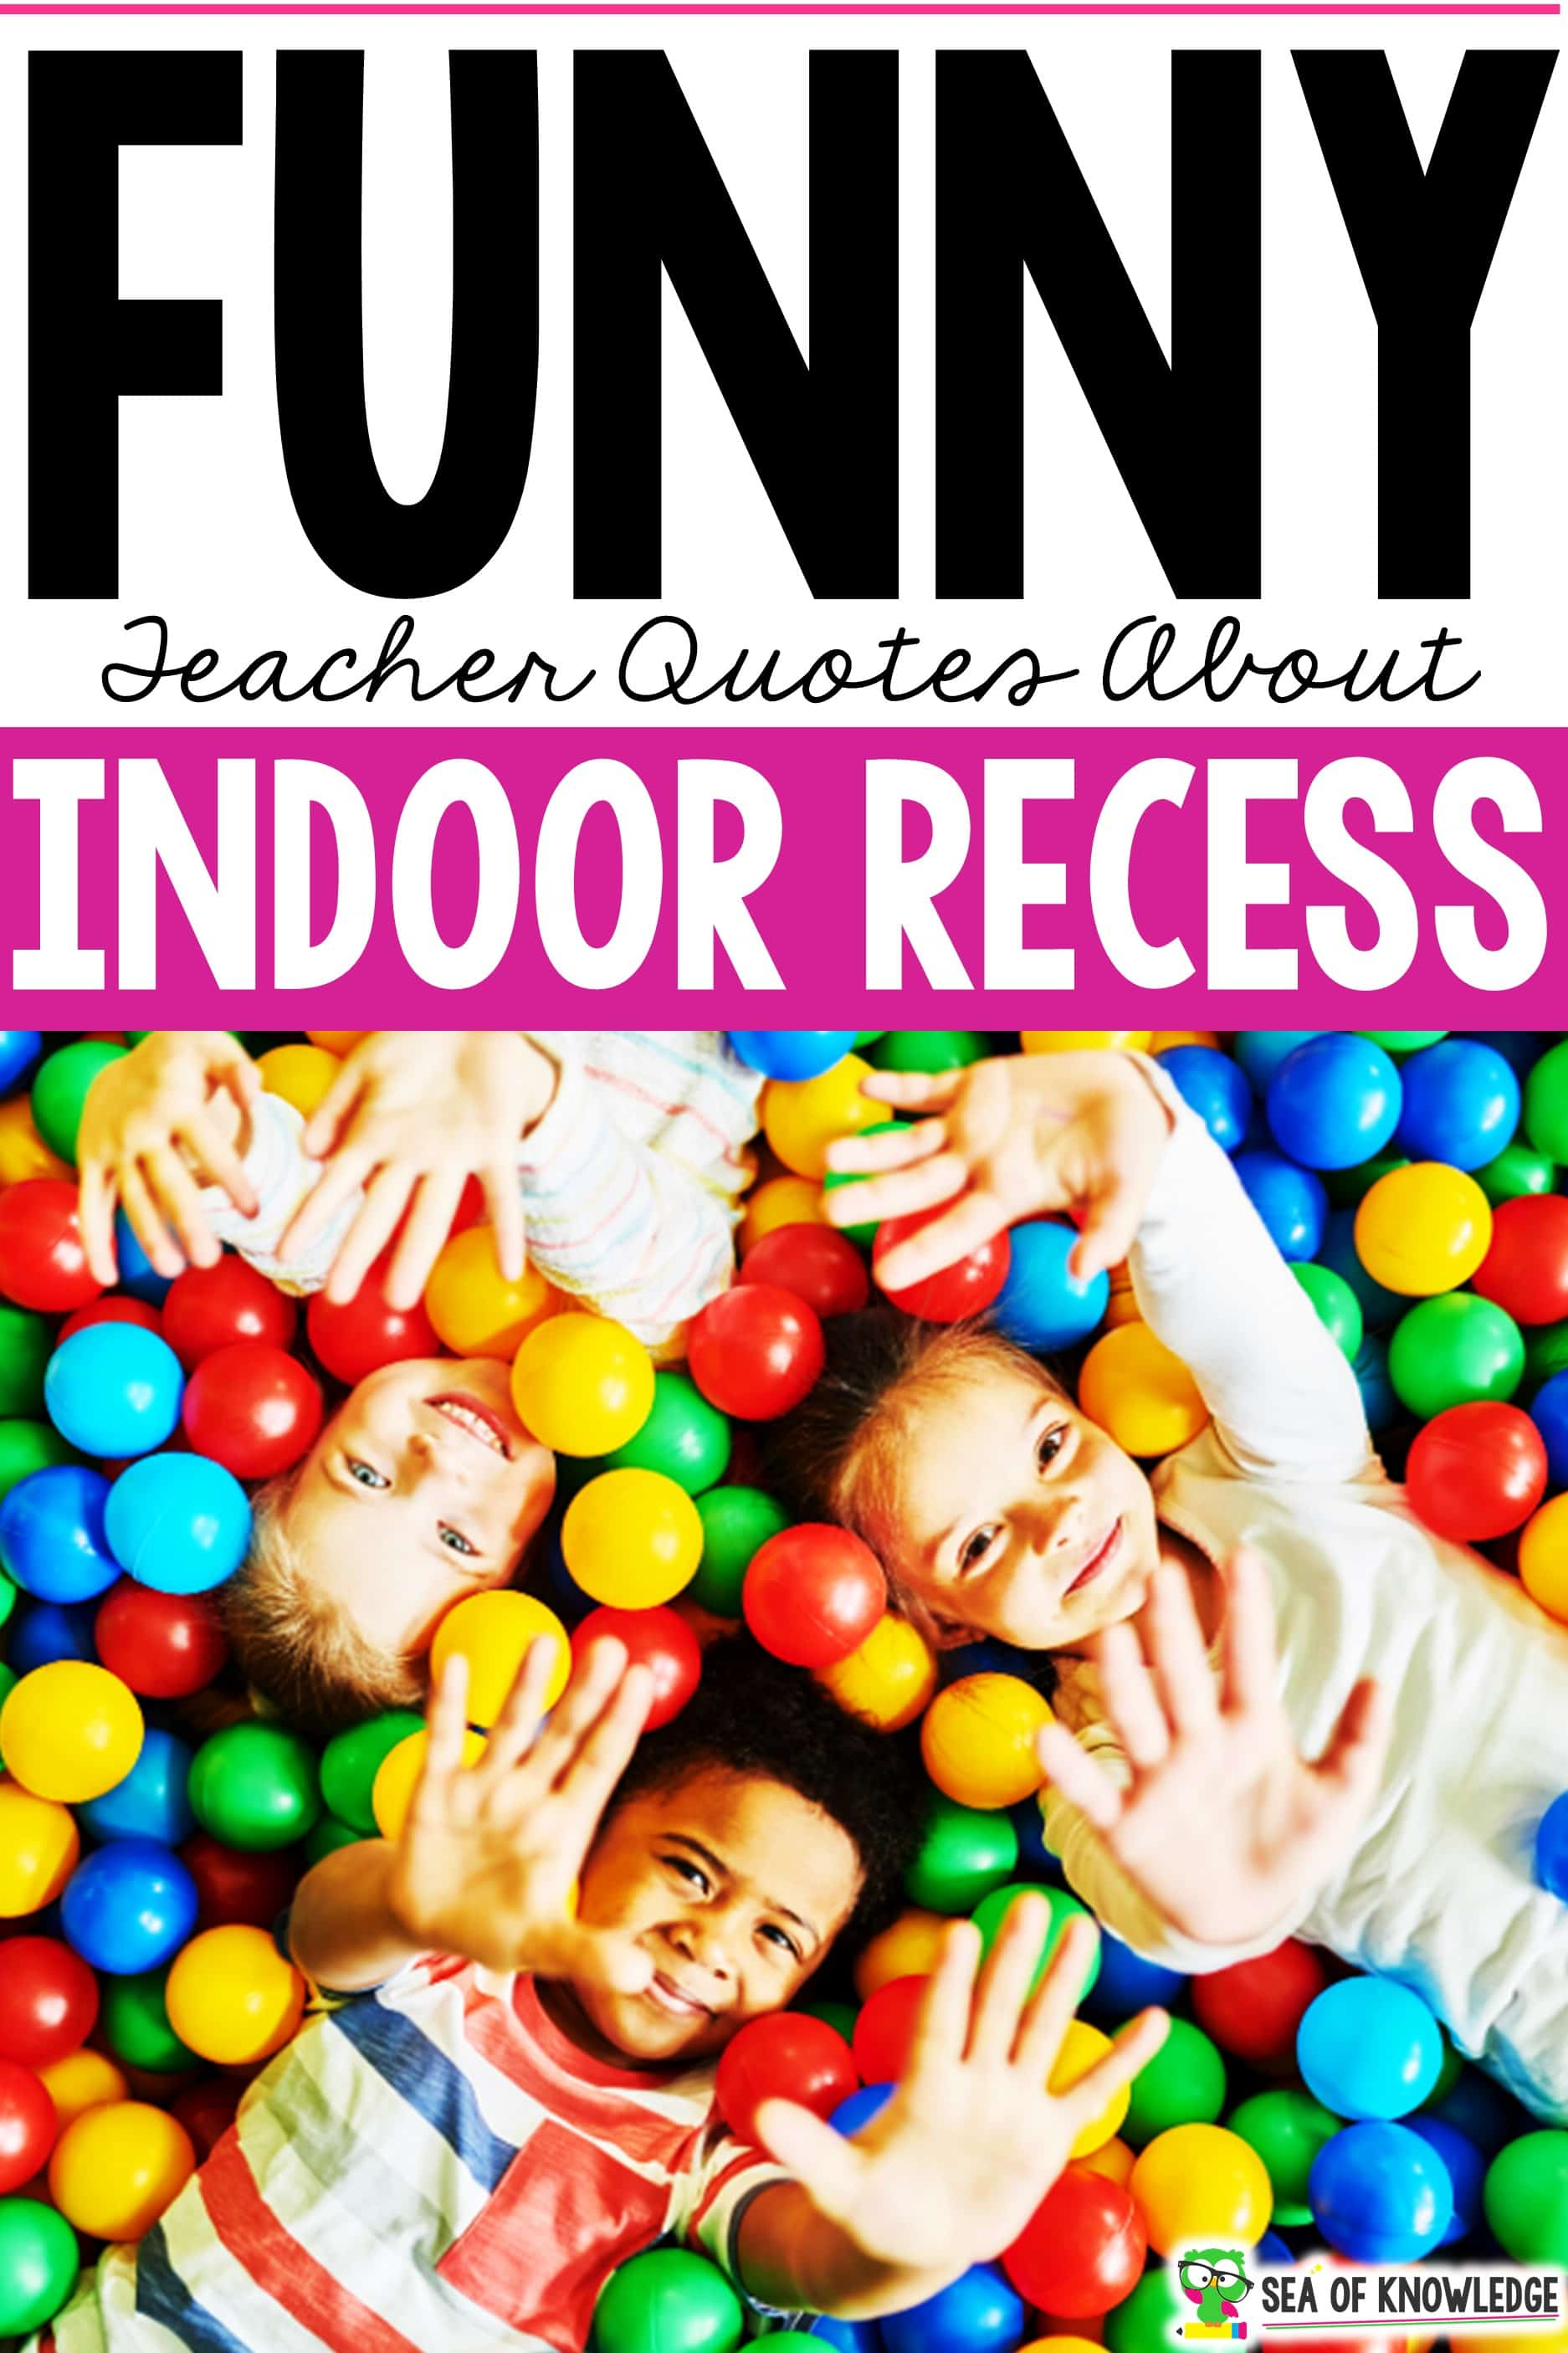 Funny Teacher Quotes Indoor Recess